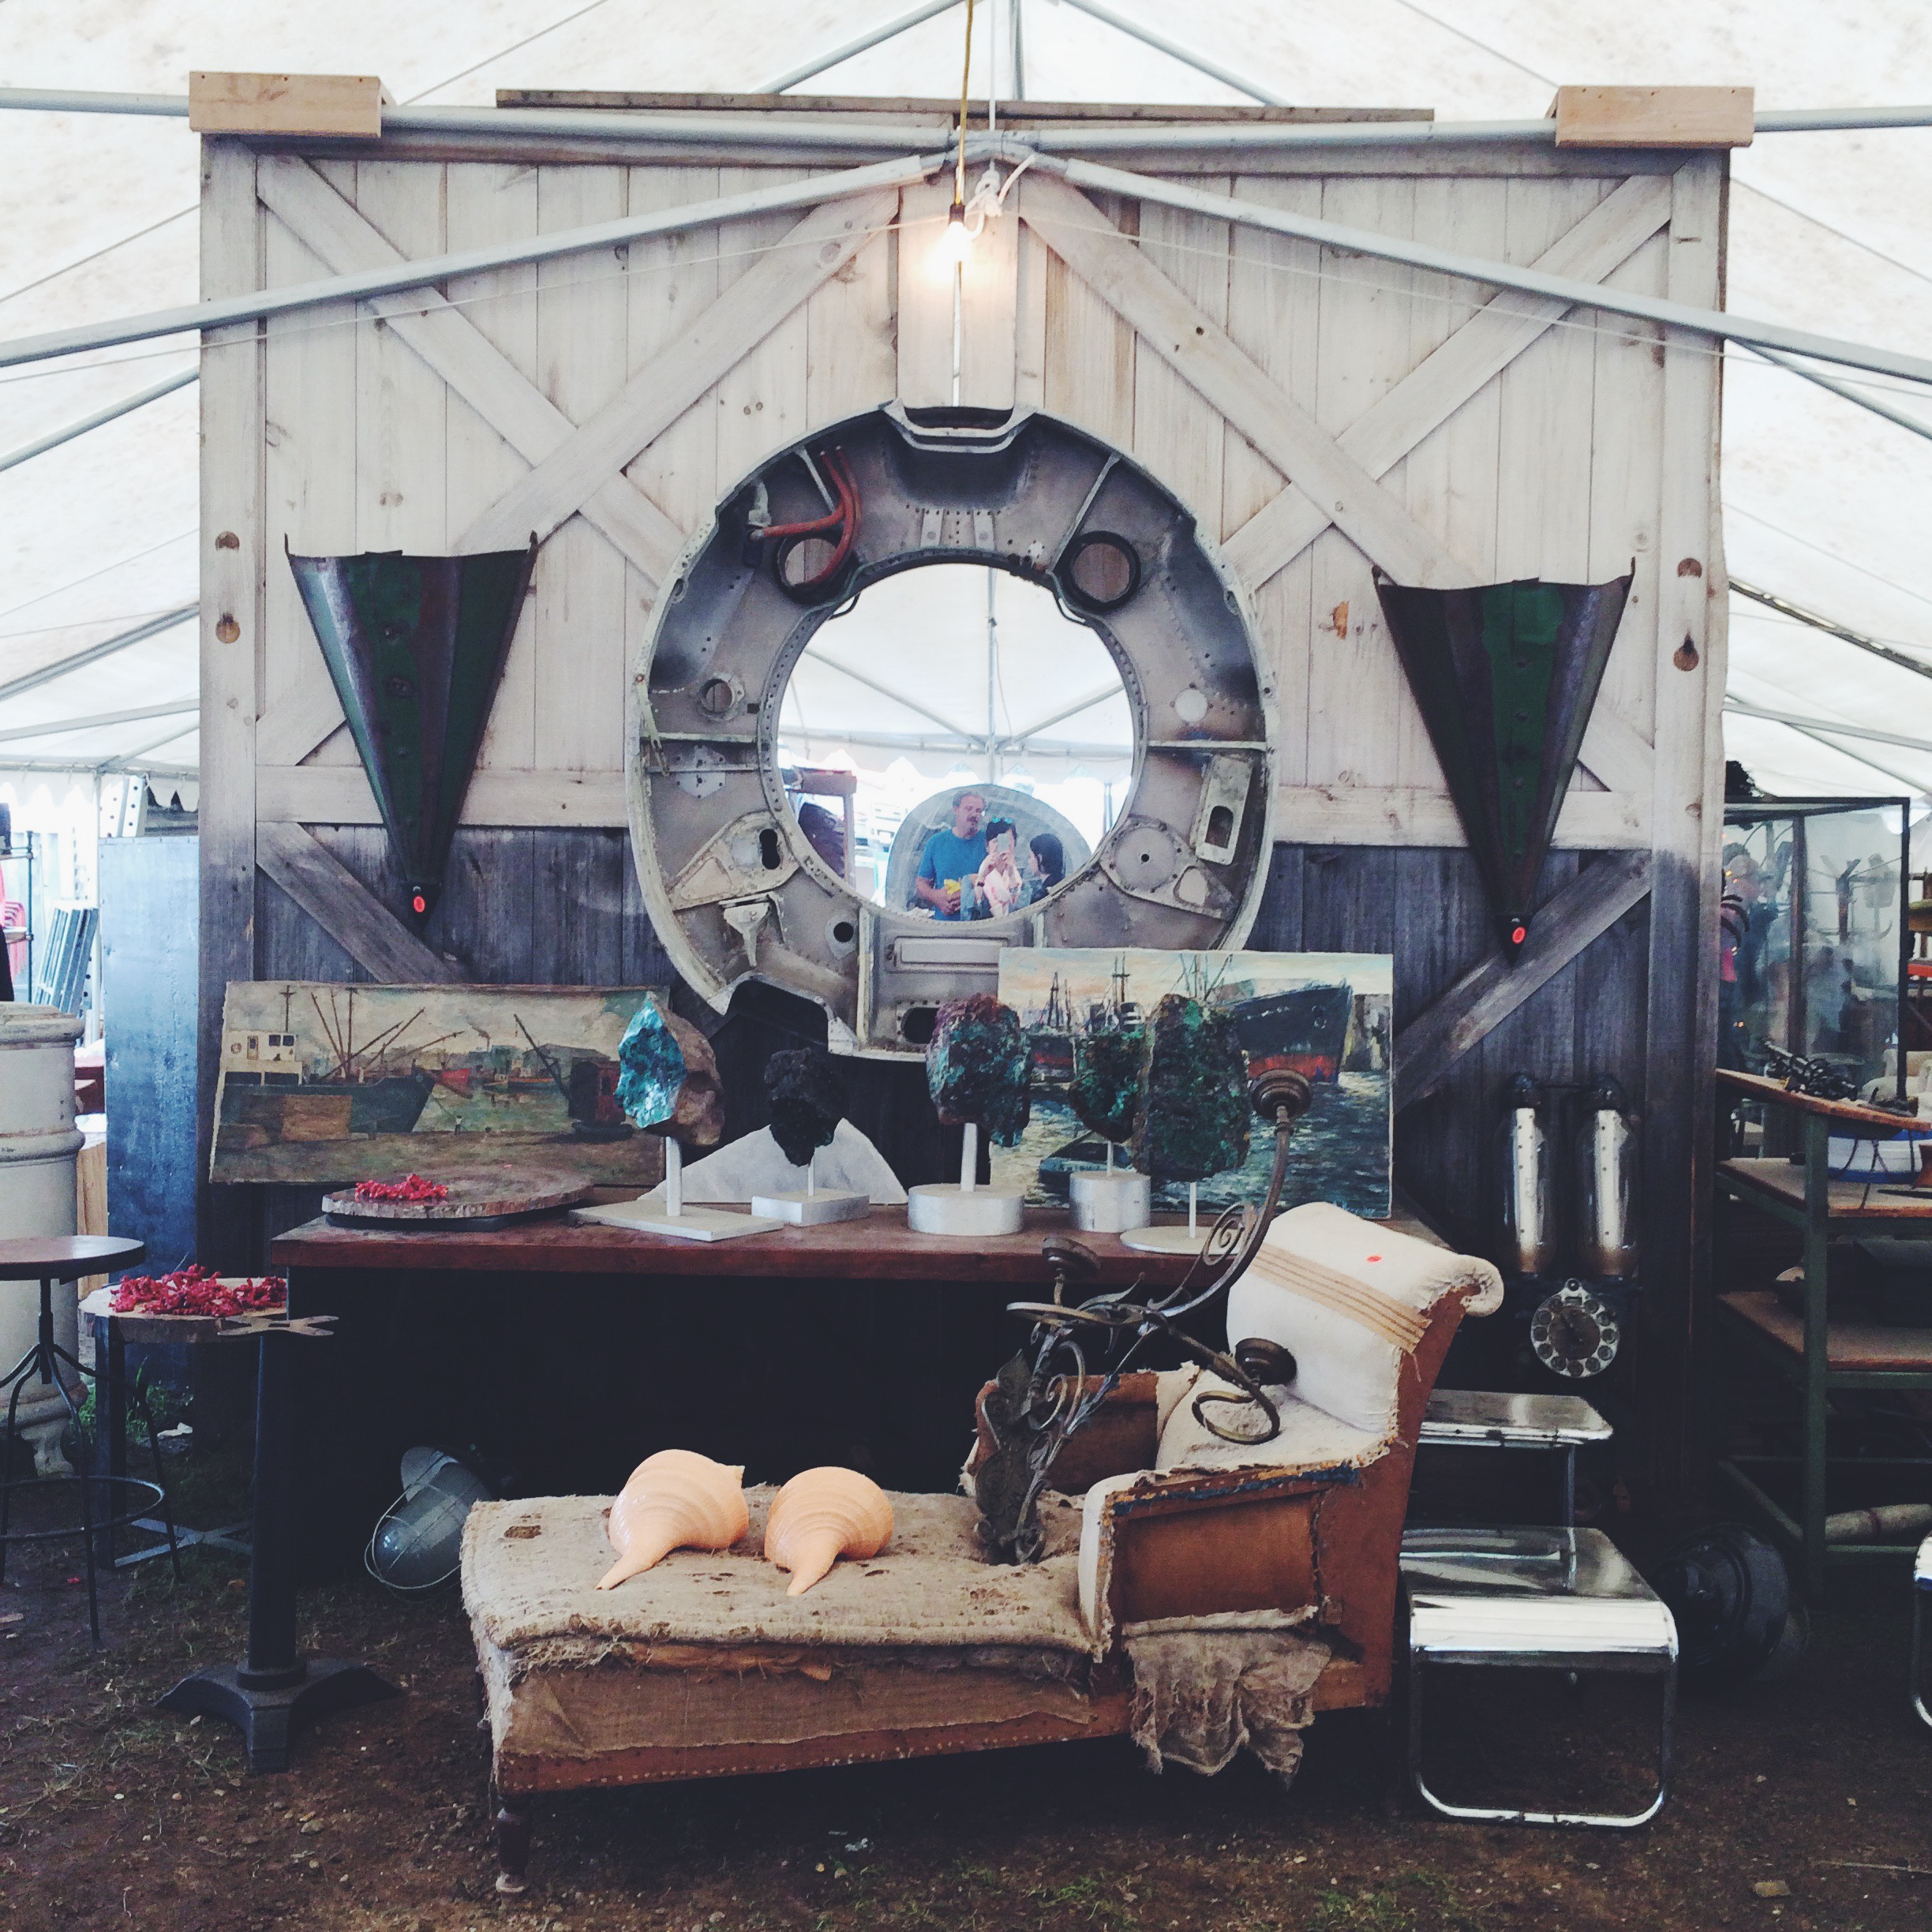 I loved the nautical and vintage-y feel of this staged section!